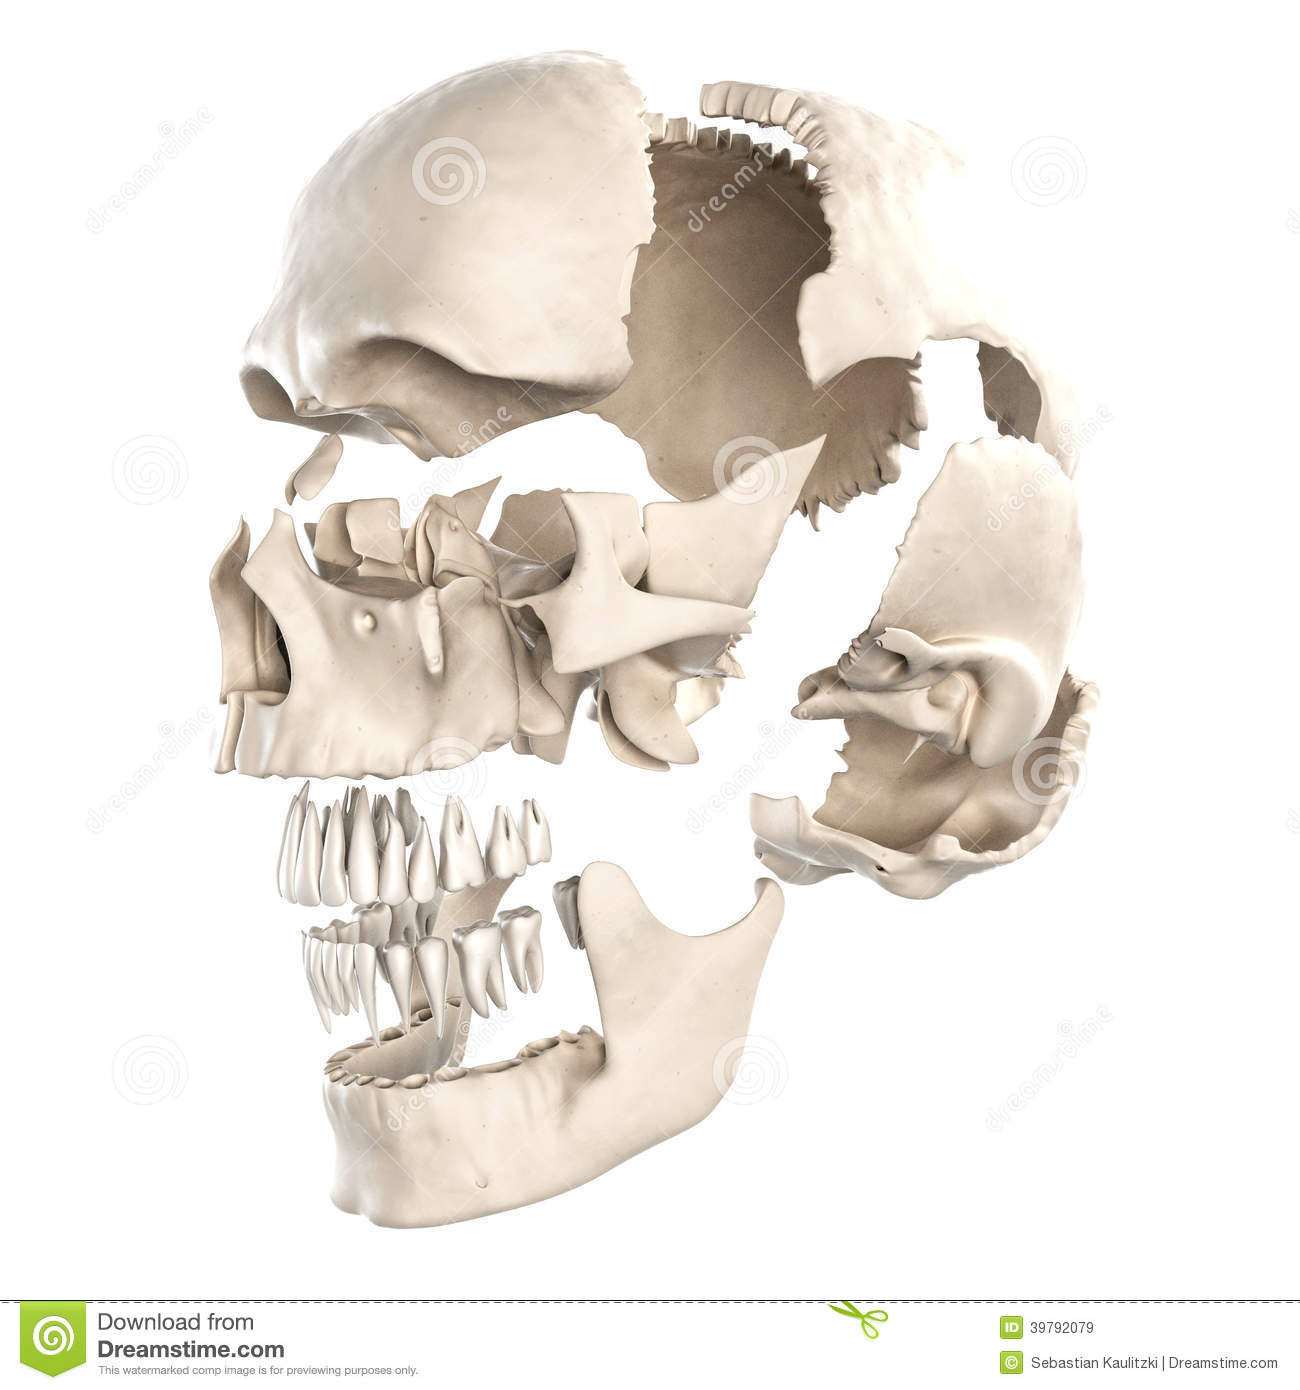 The Parts Of The Human Skull Stock Illustration - Illustration of ...